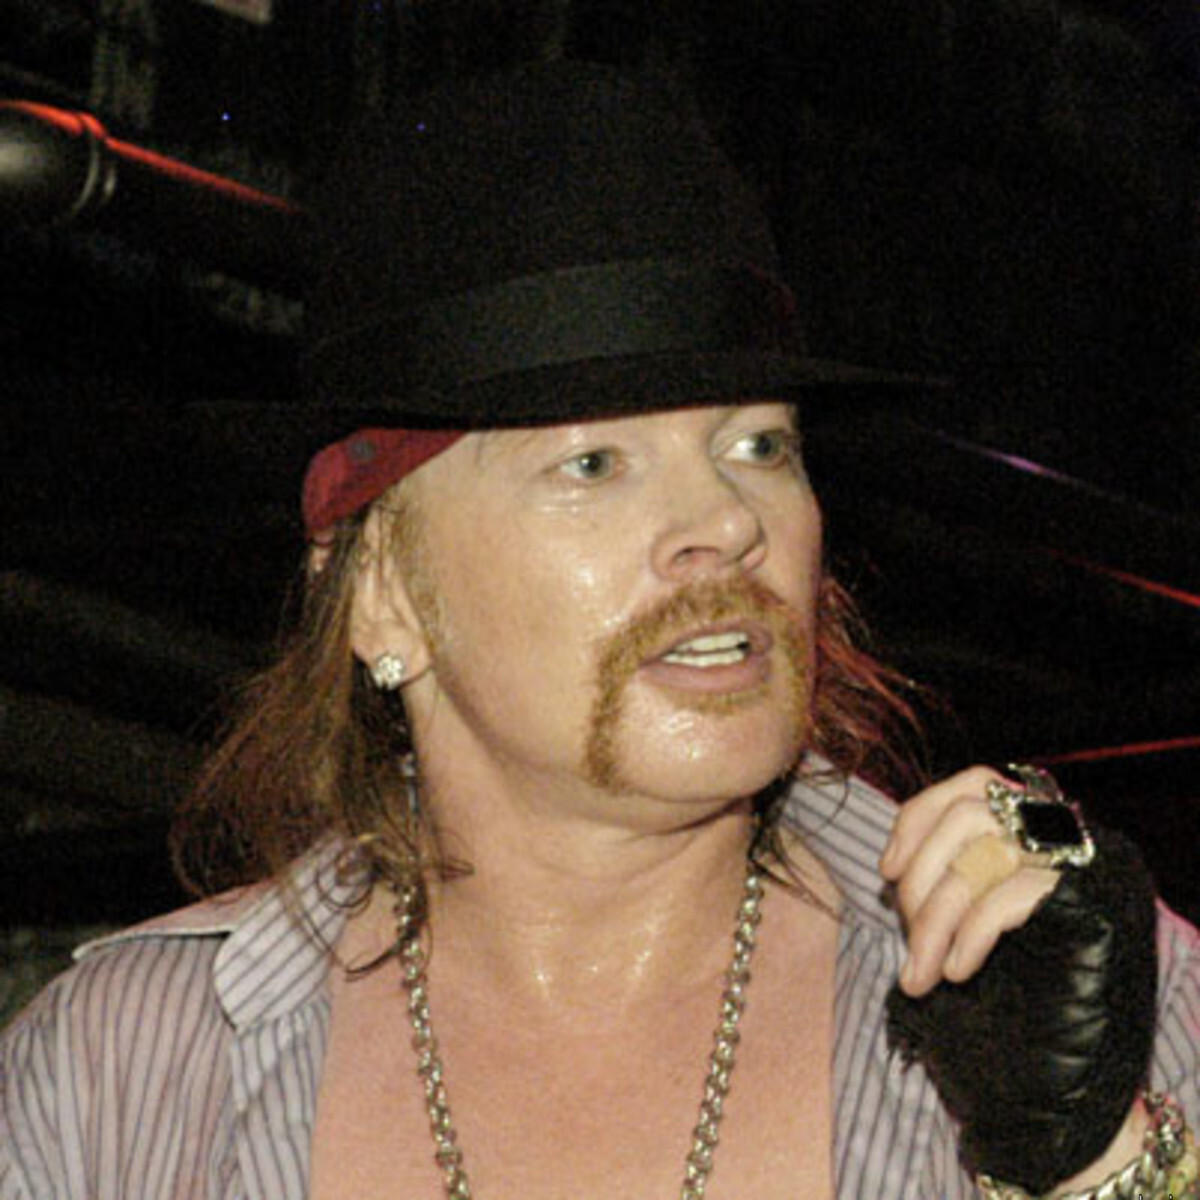 who is the lead singer of guns n' roses?